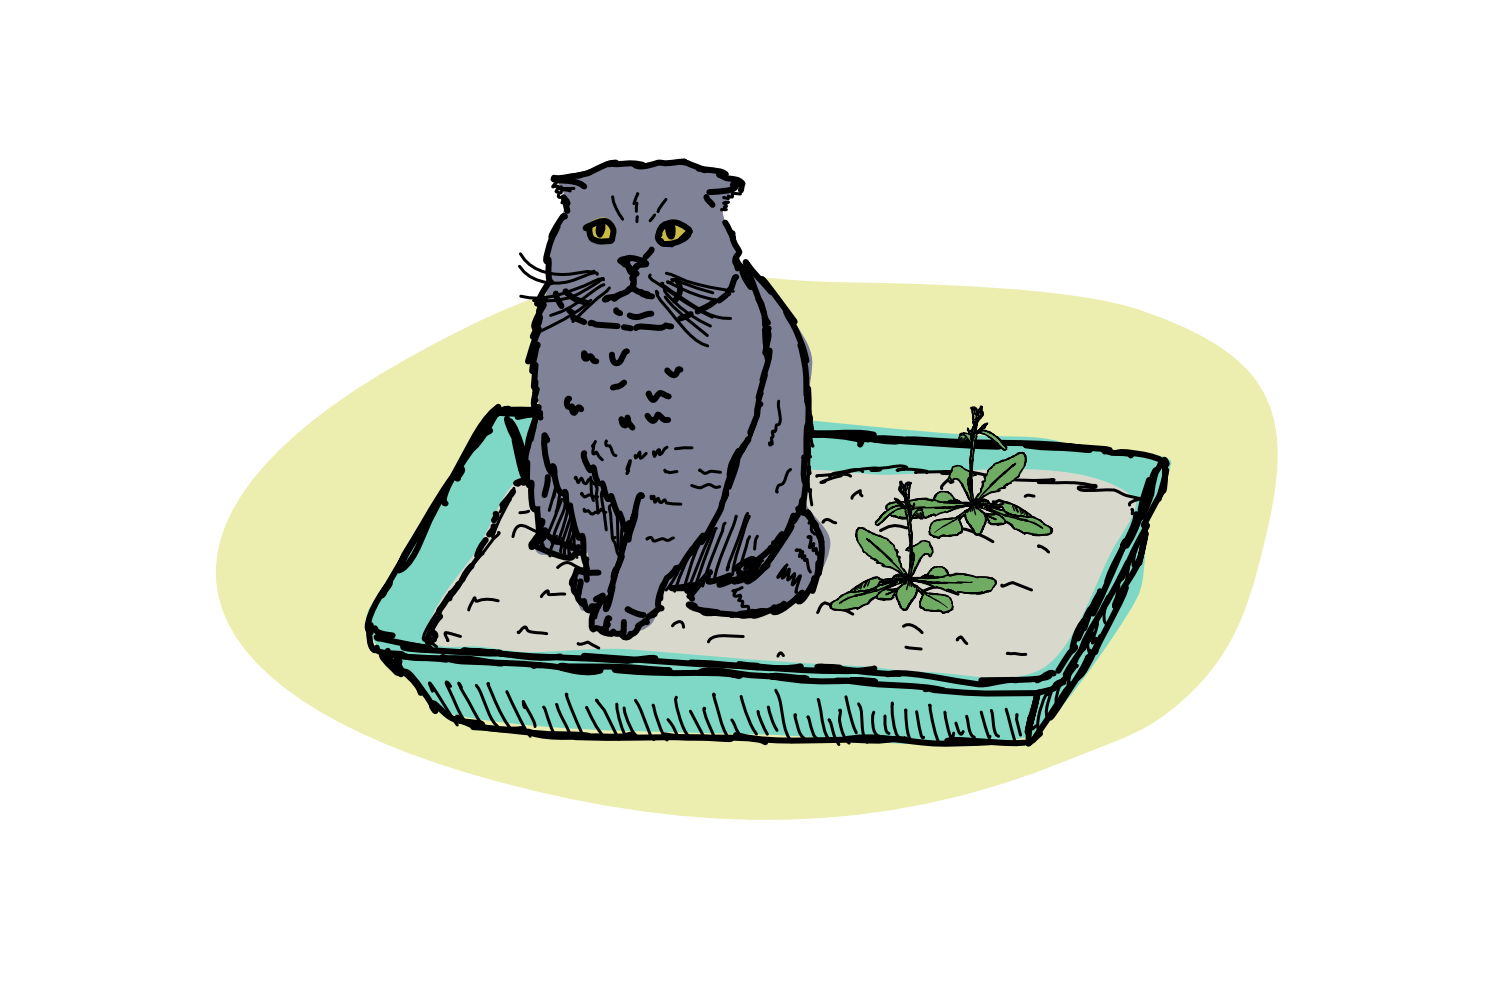 Life in the litterbox